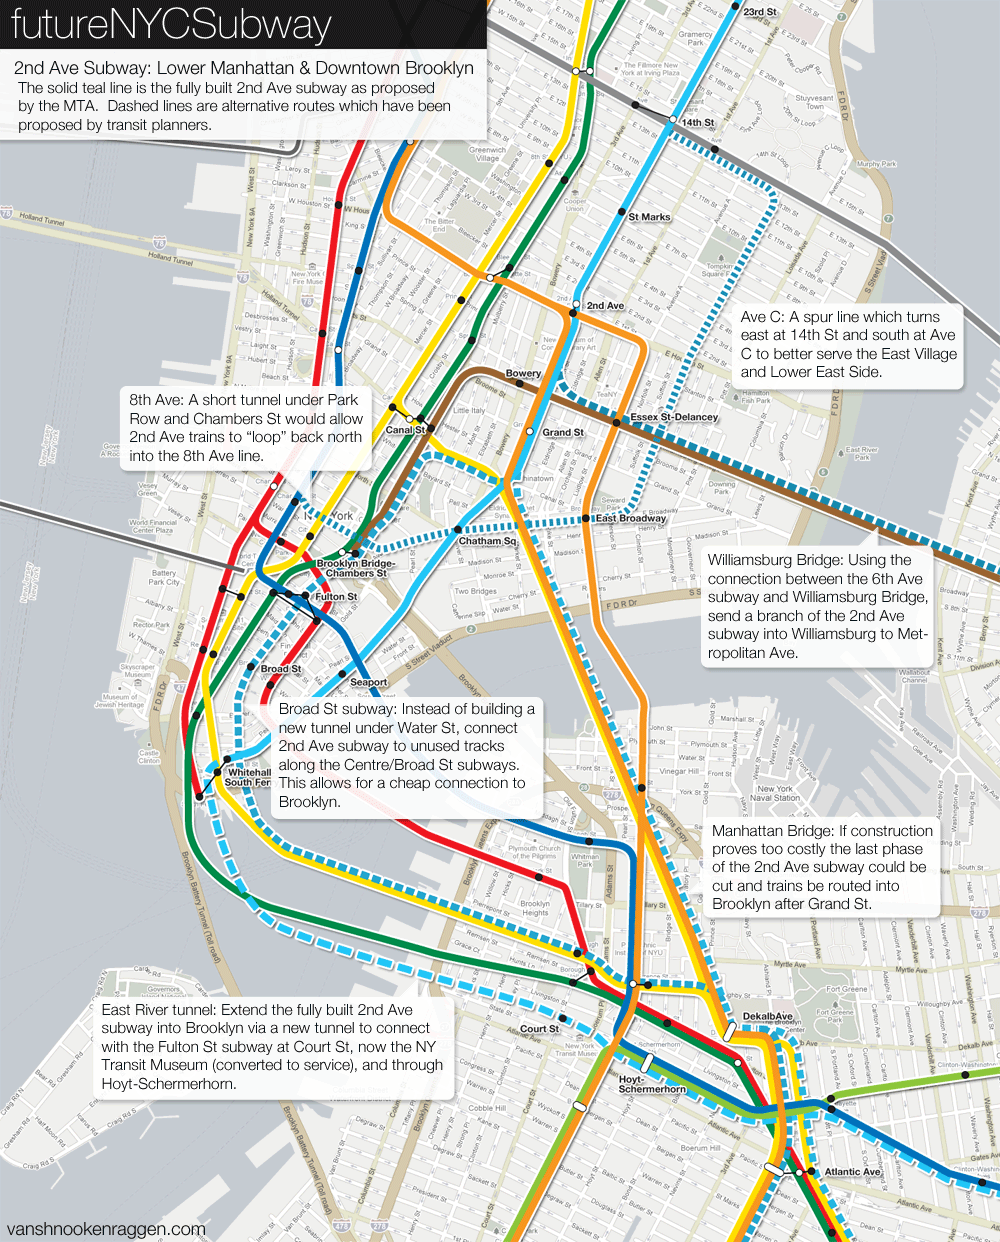 New York Subway Map Future.The Futurenycsubway 2nd Ave Subway Future Vanshnookenraggen